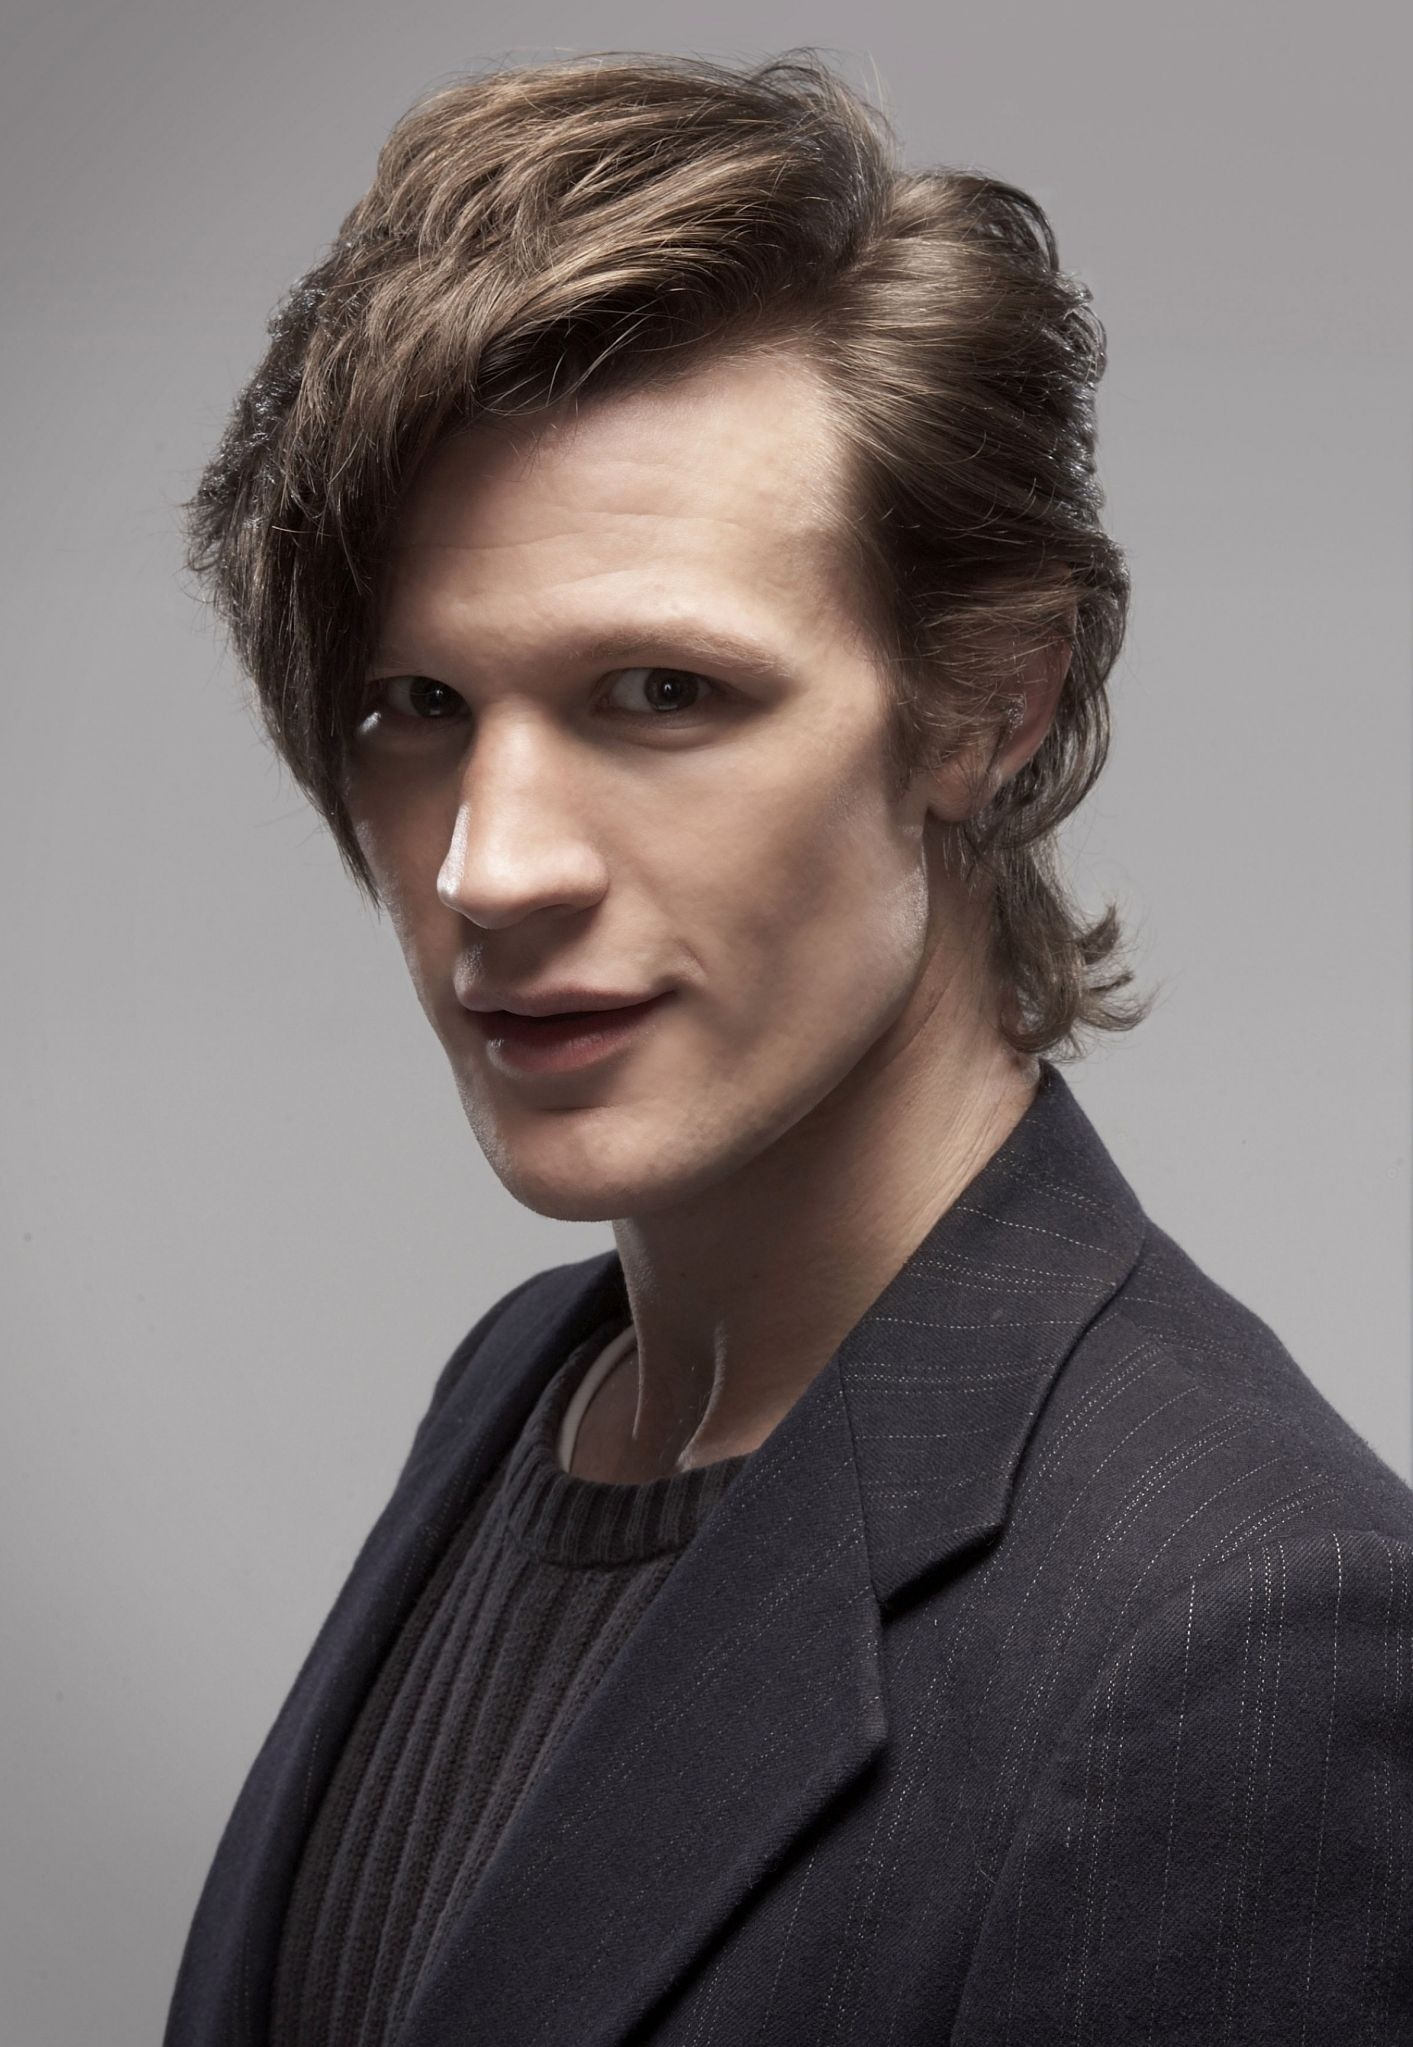 Matt Smith - He's famous for his role as the eleventh incarnation of the Doctor in Doctor Who series: http://circleme.com/items/matt-smith--3